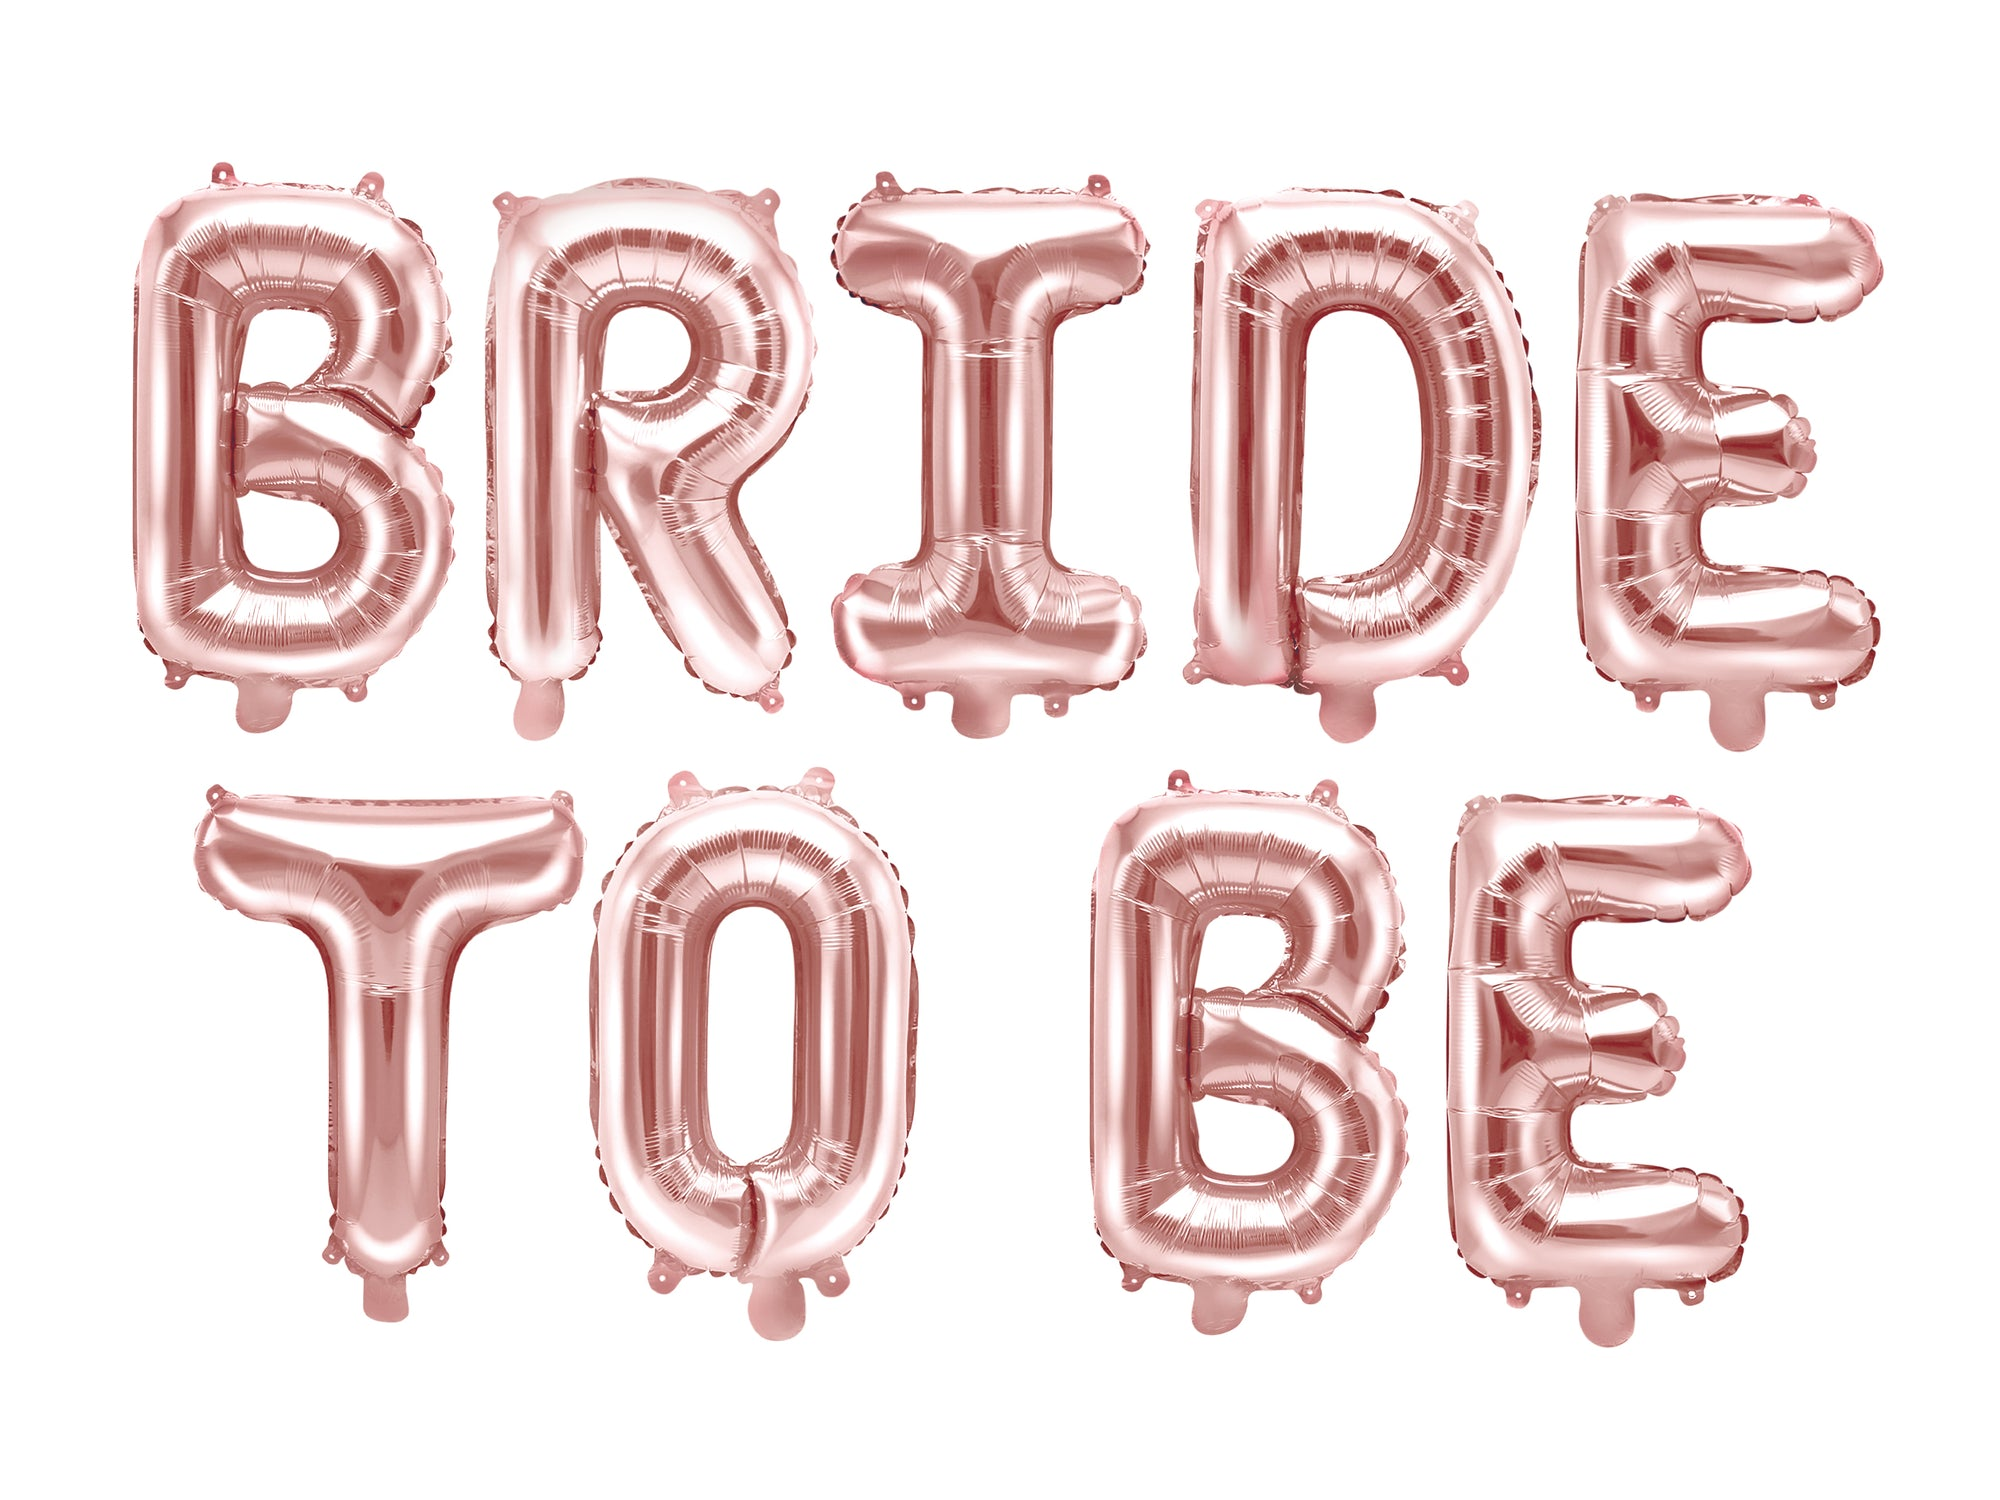 'Bride To Be' Metallic Balloon Letters